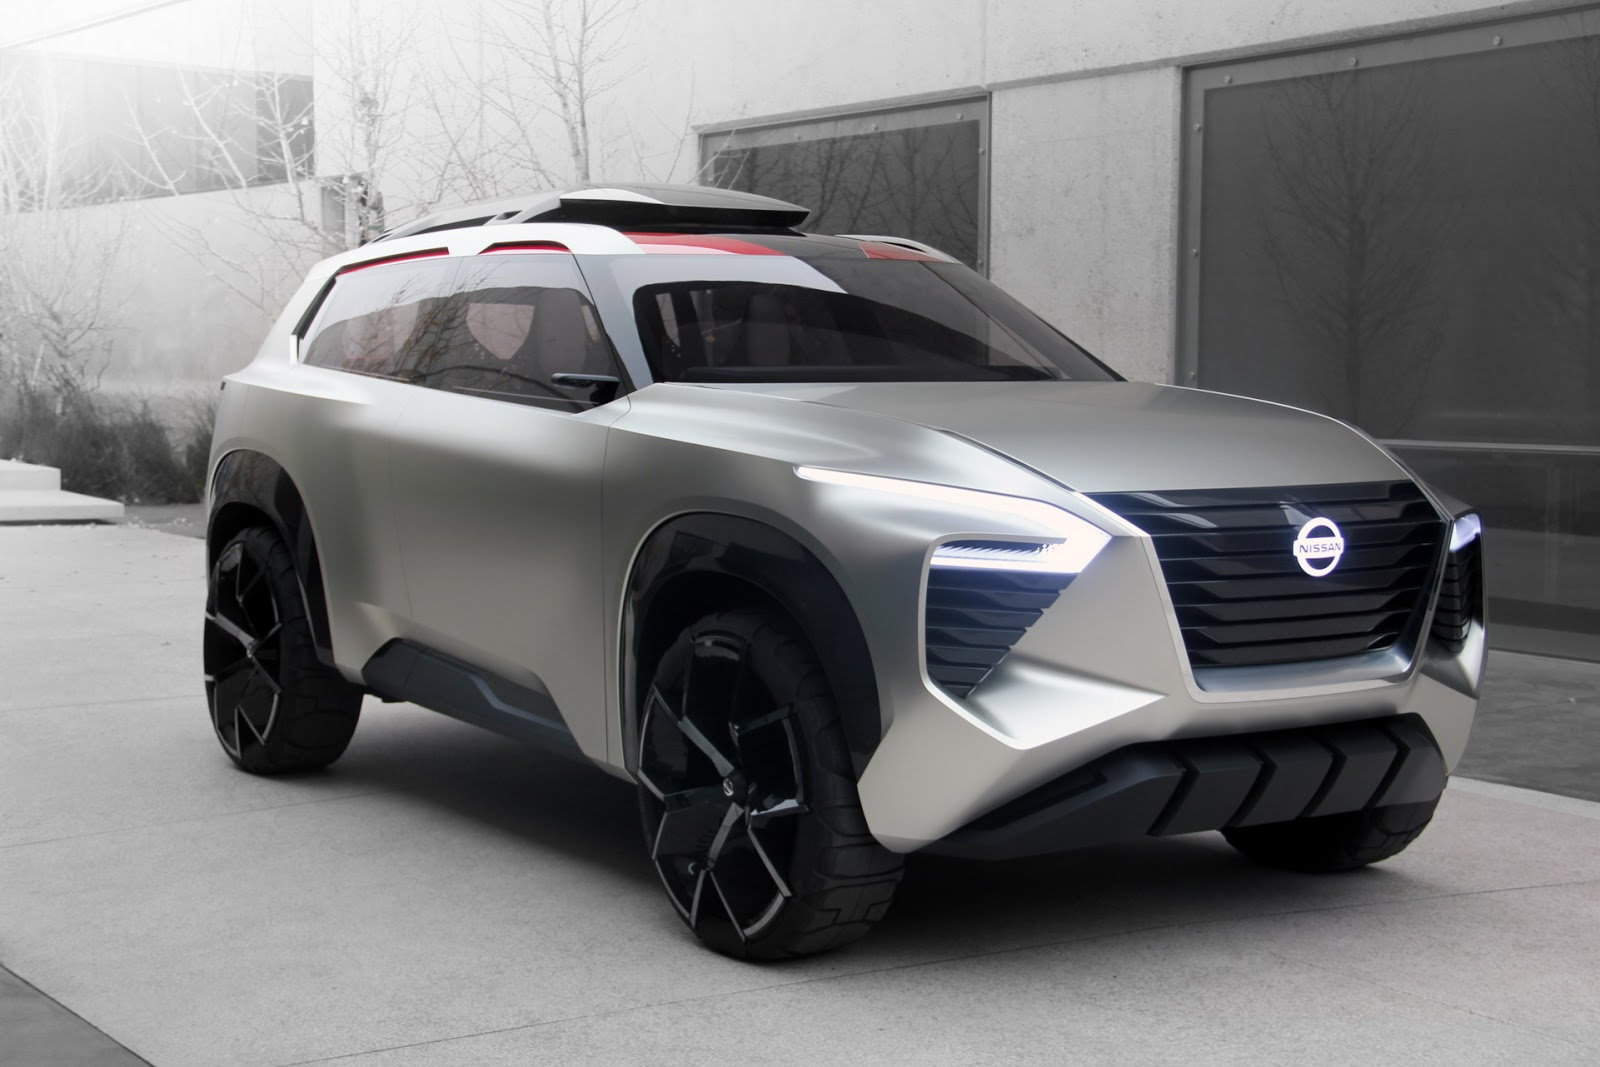 Nissan-Xmotion-Concept-43.jpg